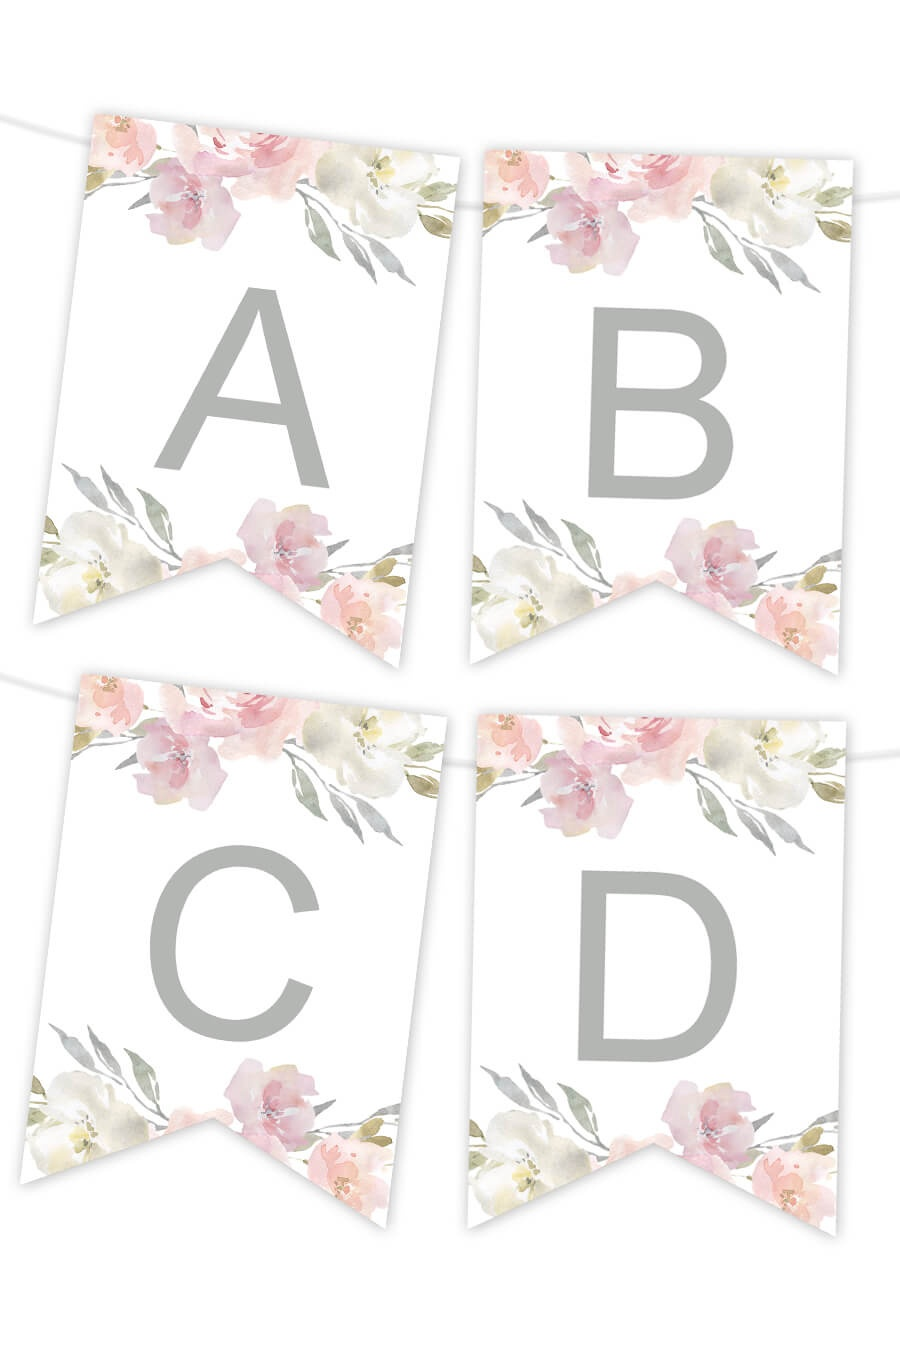 Printable Banners - Make Your Own Banners With Our Printable Templates - Free Printable Banner Maker